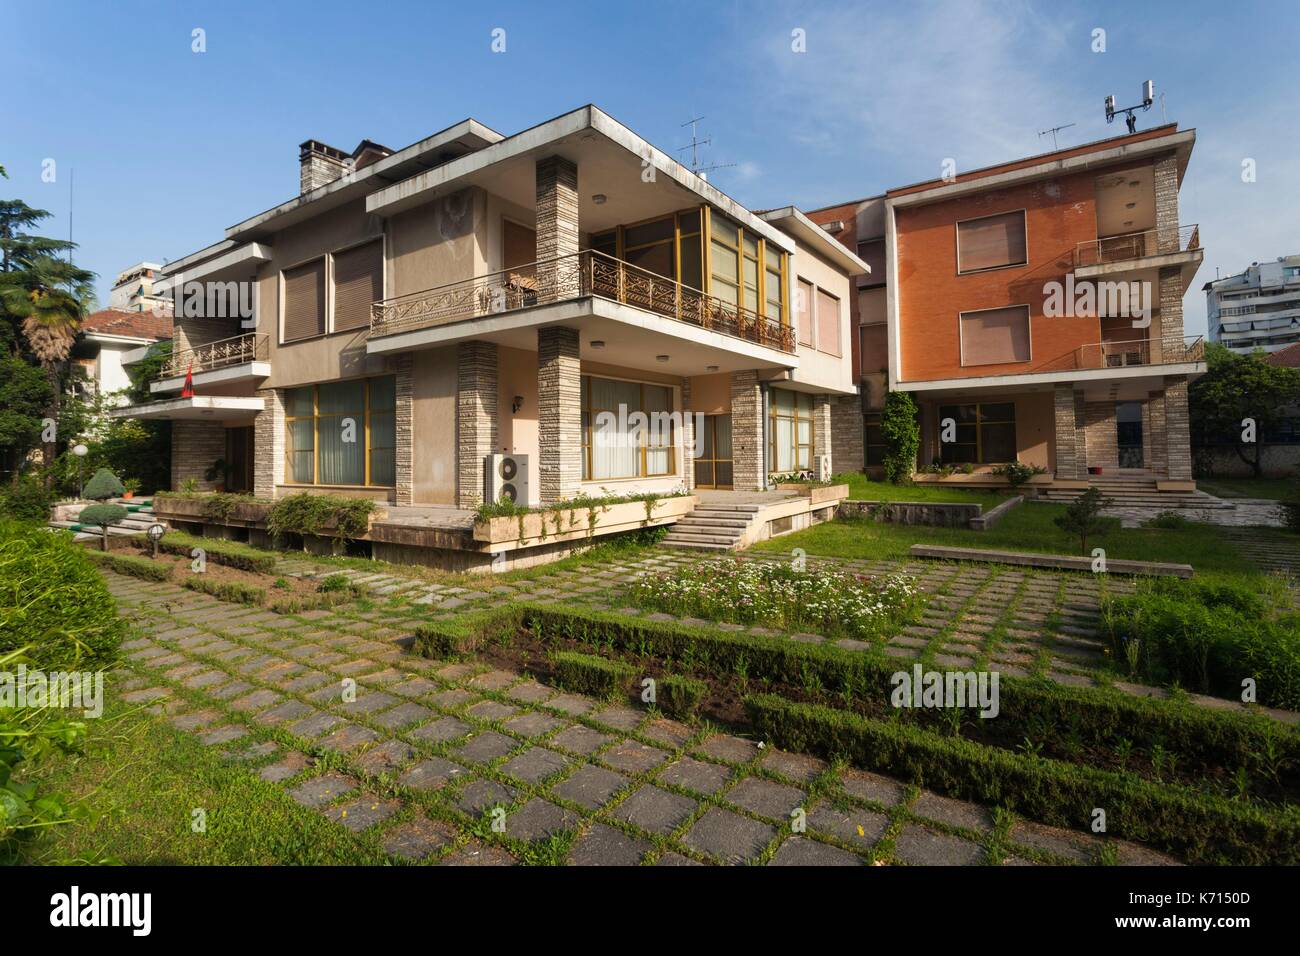 Albania, Tirana, Blloku area, formerly used by Communist party elite, former home of Communist leader Enver Hoxha, morning - Stock Image